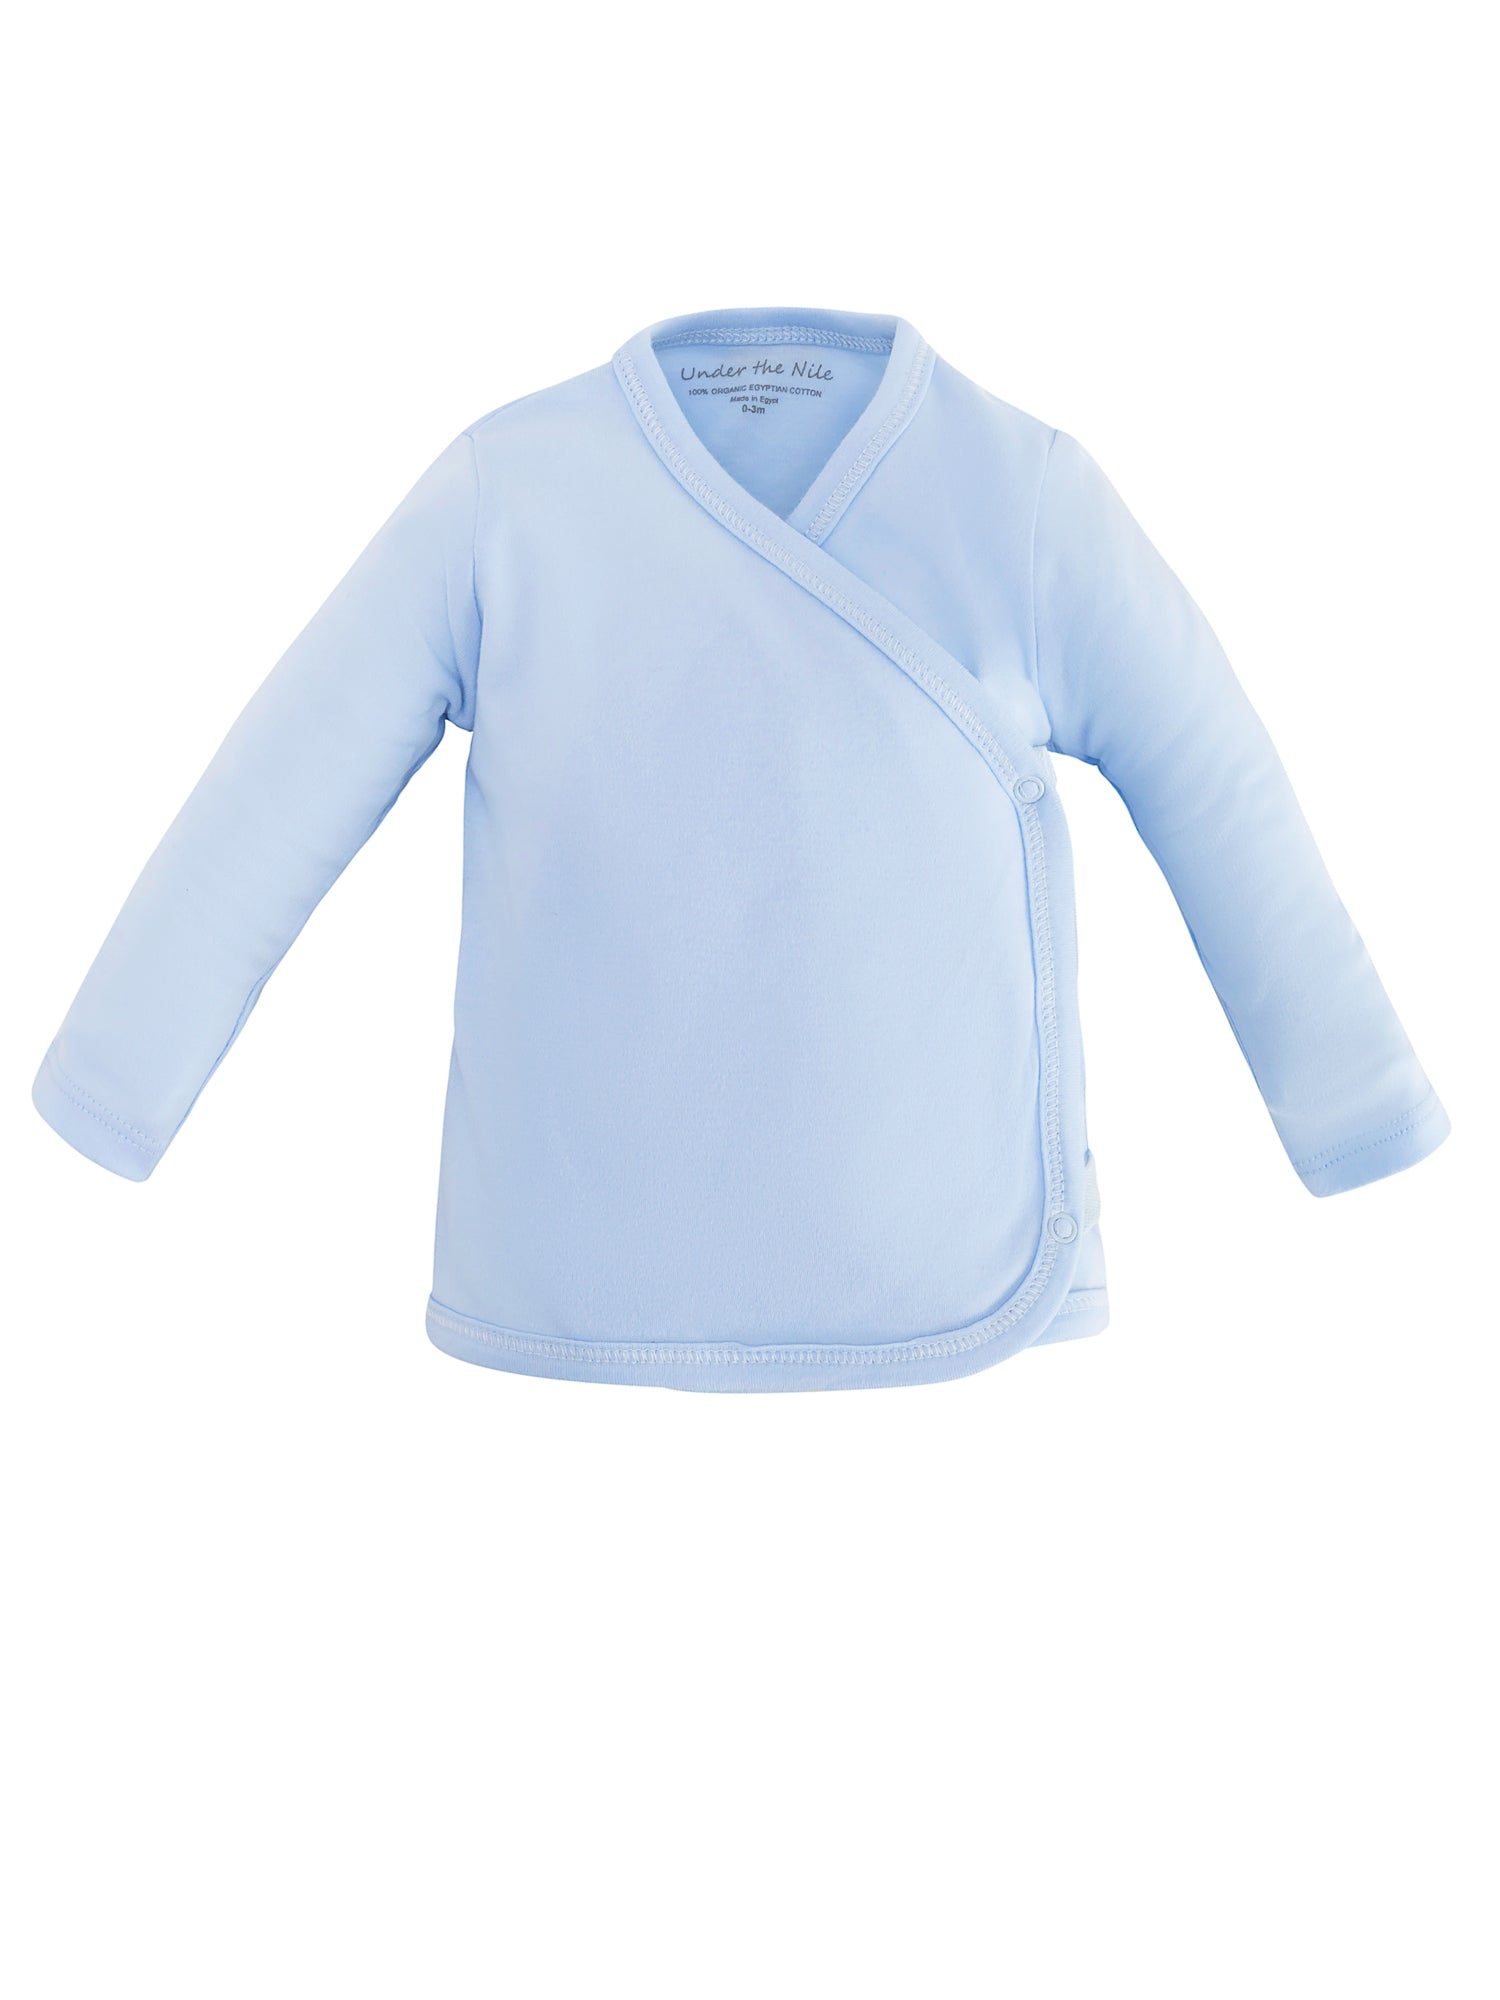 fdb142fafb Organic Cotton Blue Long Sleeve Side-Snap T-shirt for Baby – Under the Nile